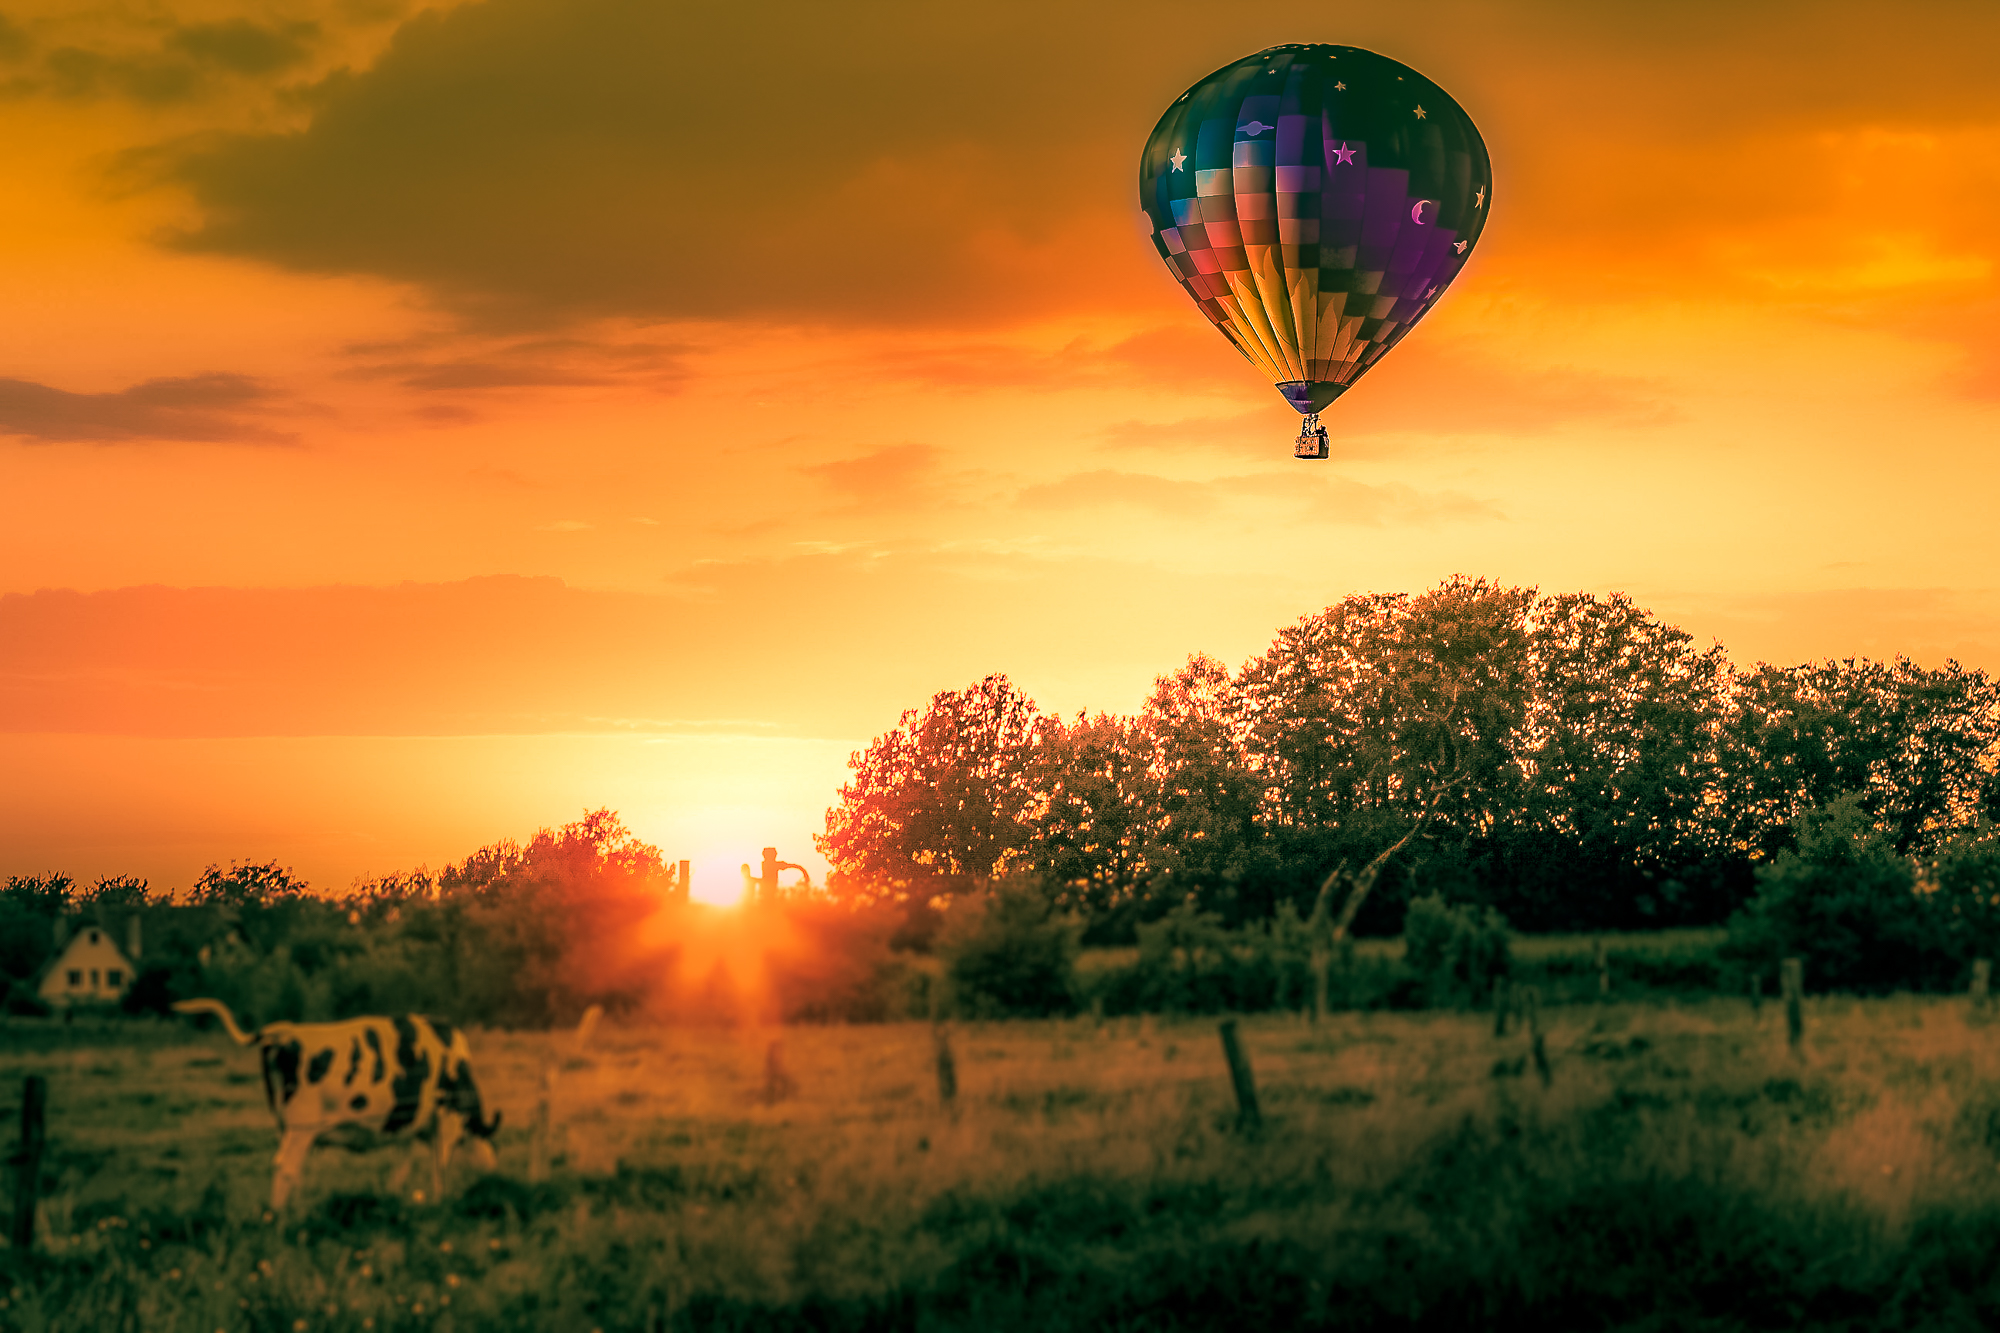 58073A - Hot Air Balloon and Farm